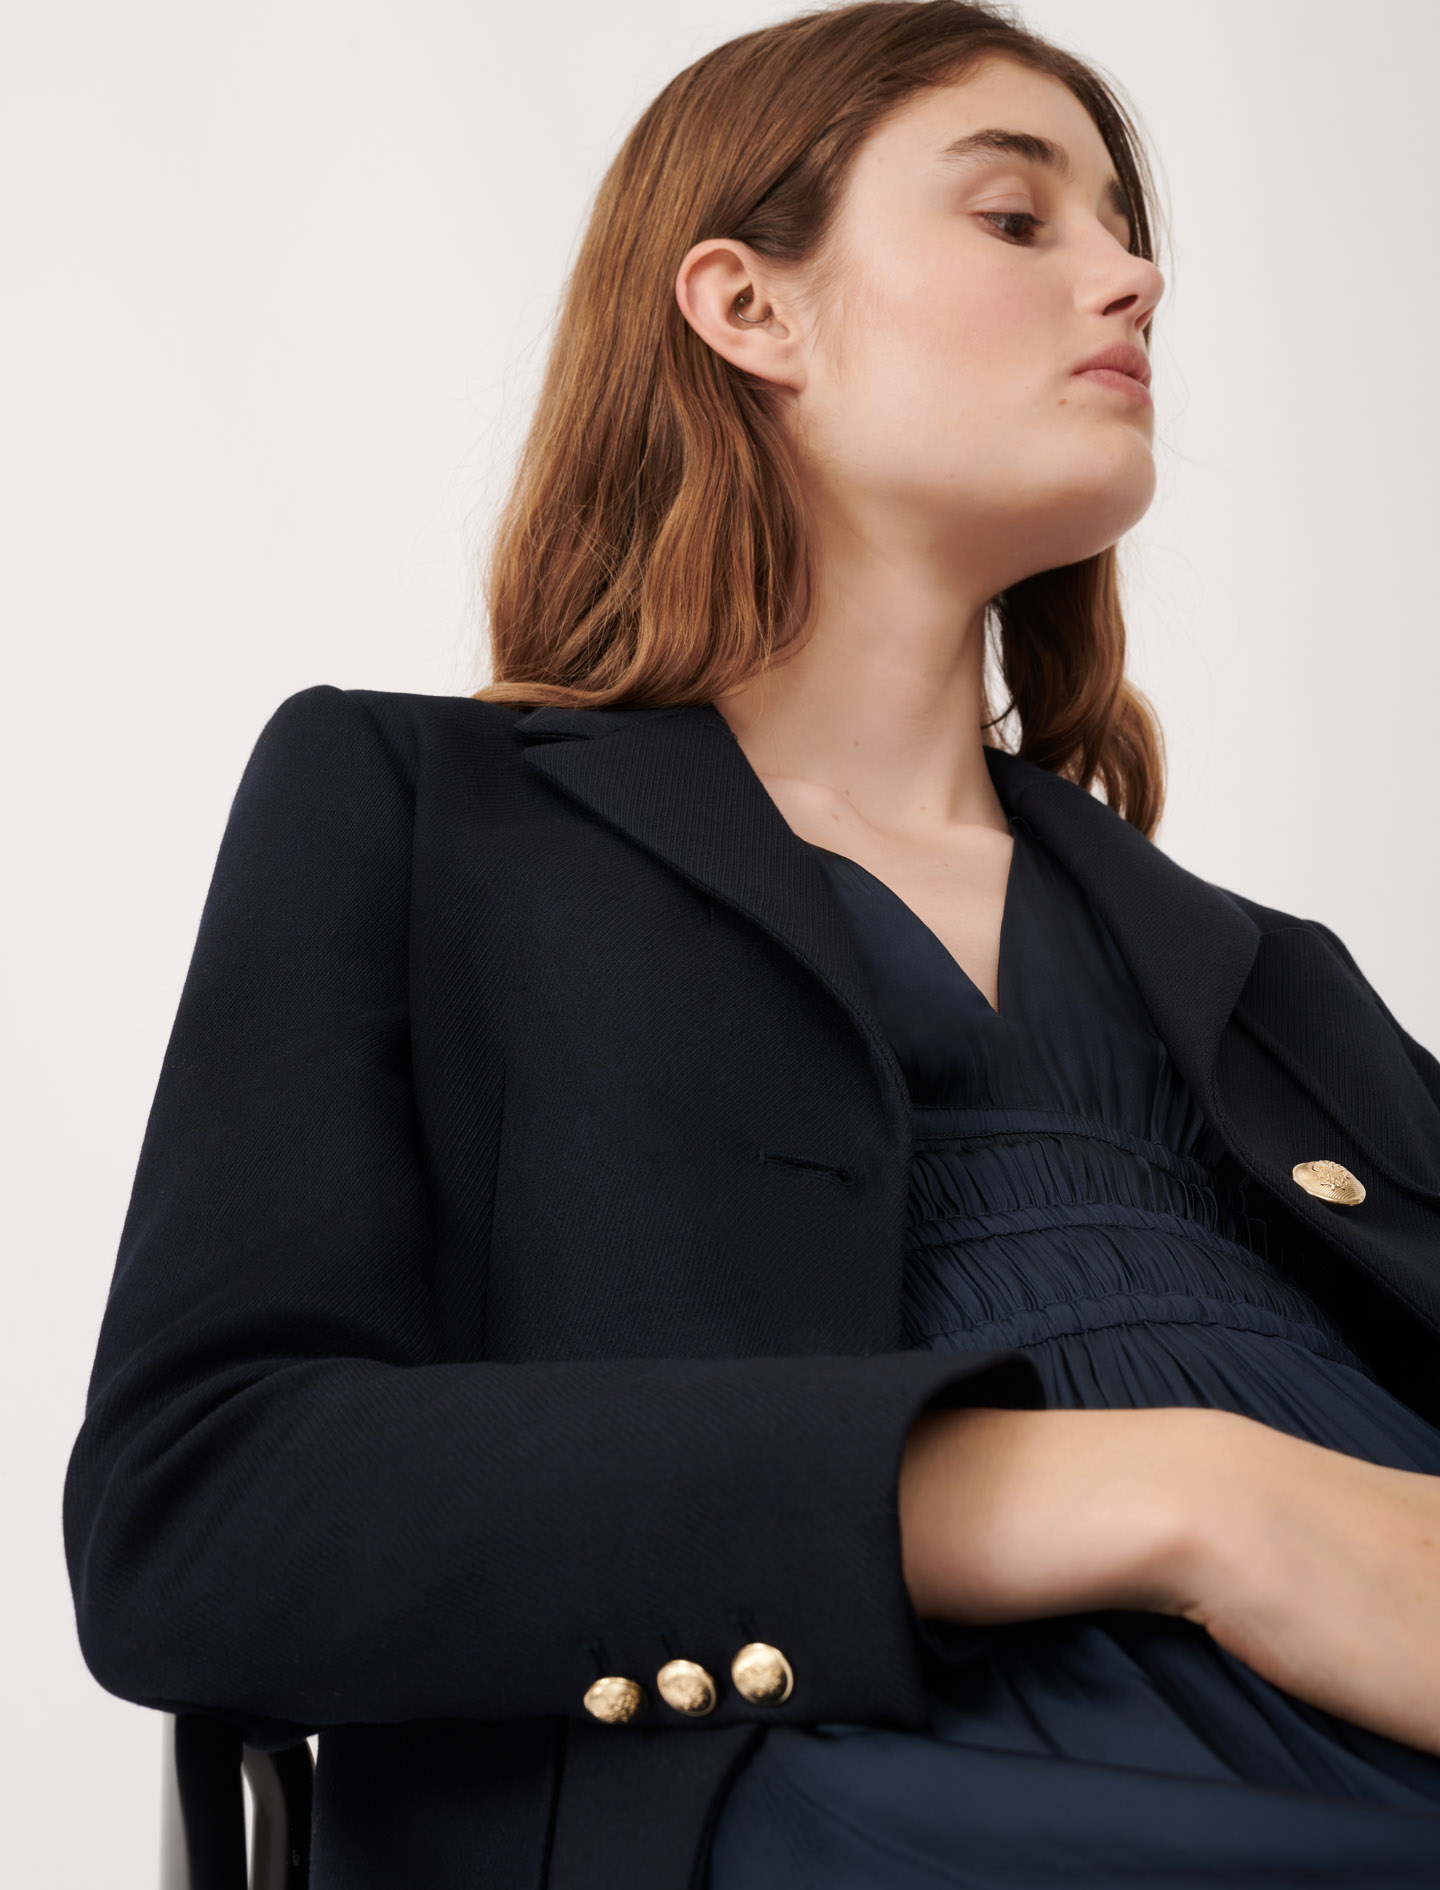 College-style suit jacket  - Navy